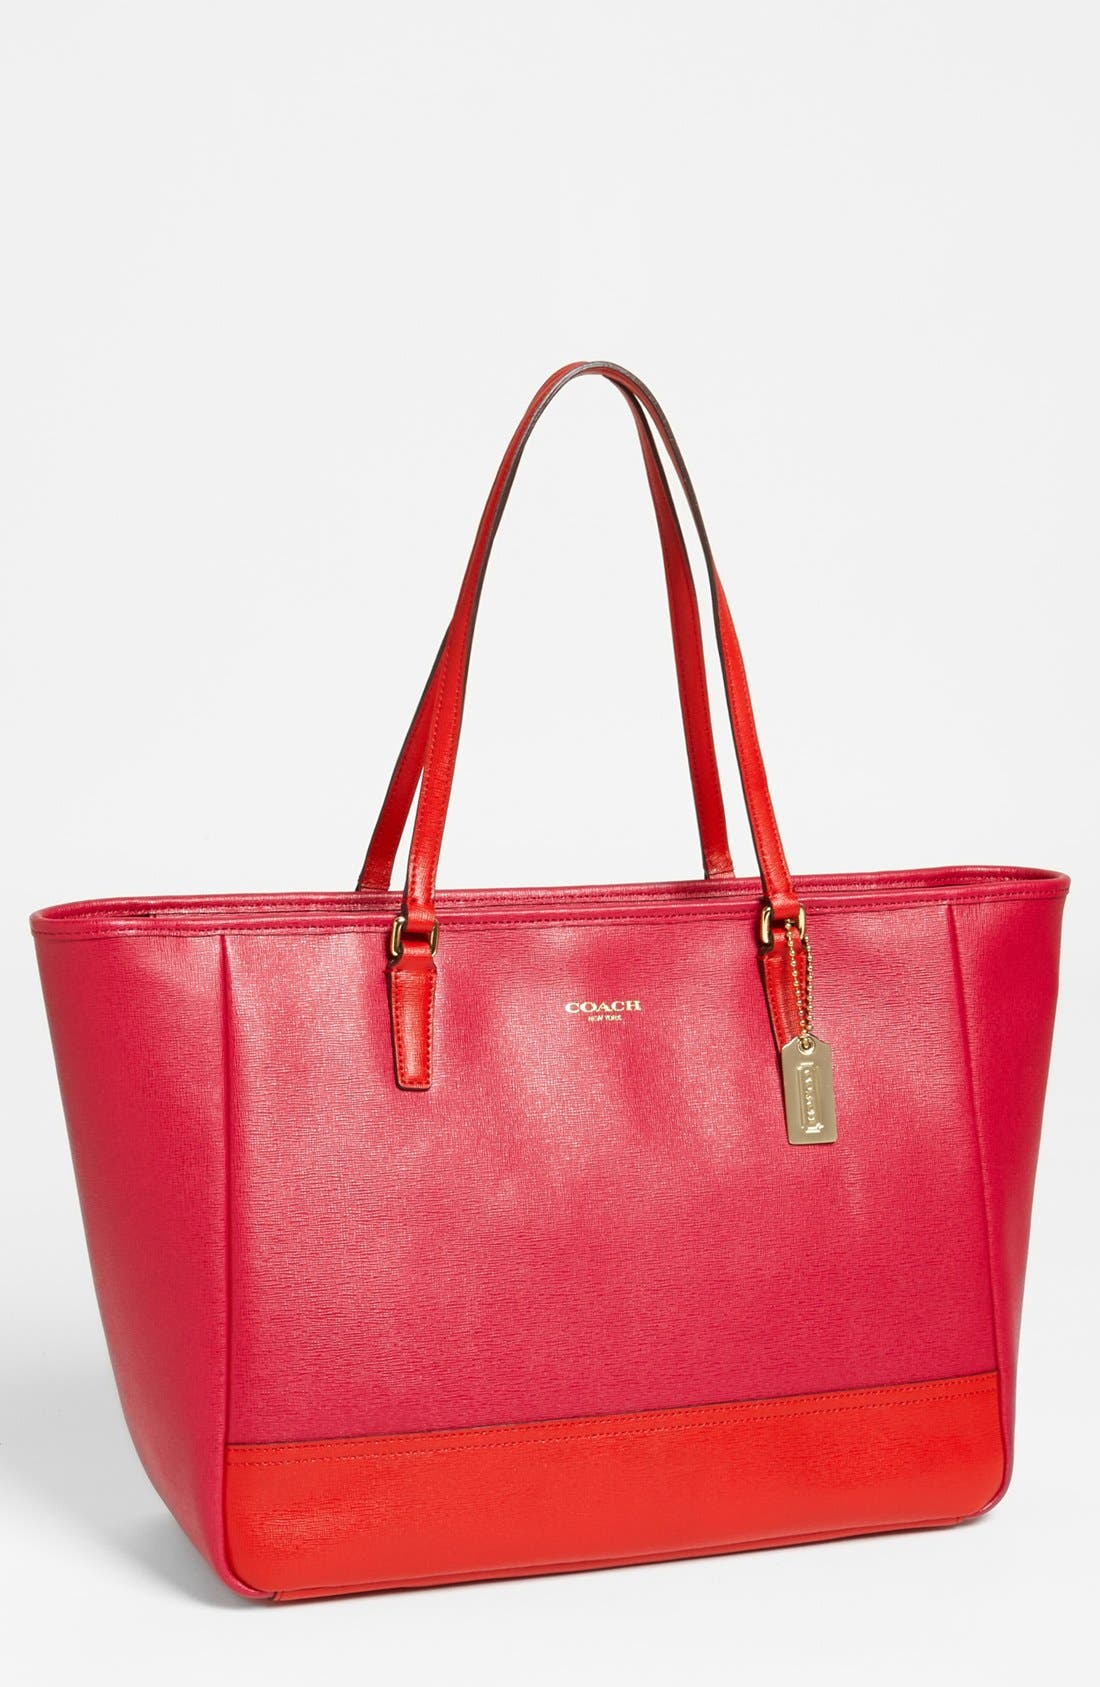 Main Image - COACH 'Colorblock - Medium' Leather Tote